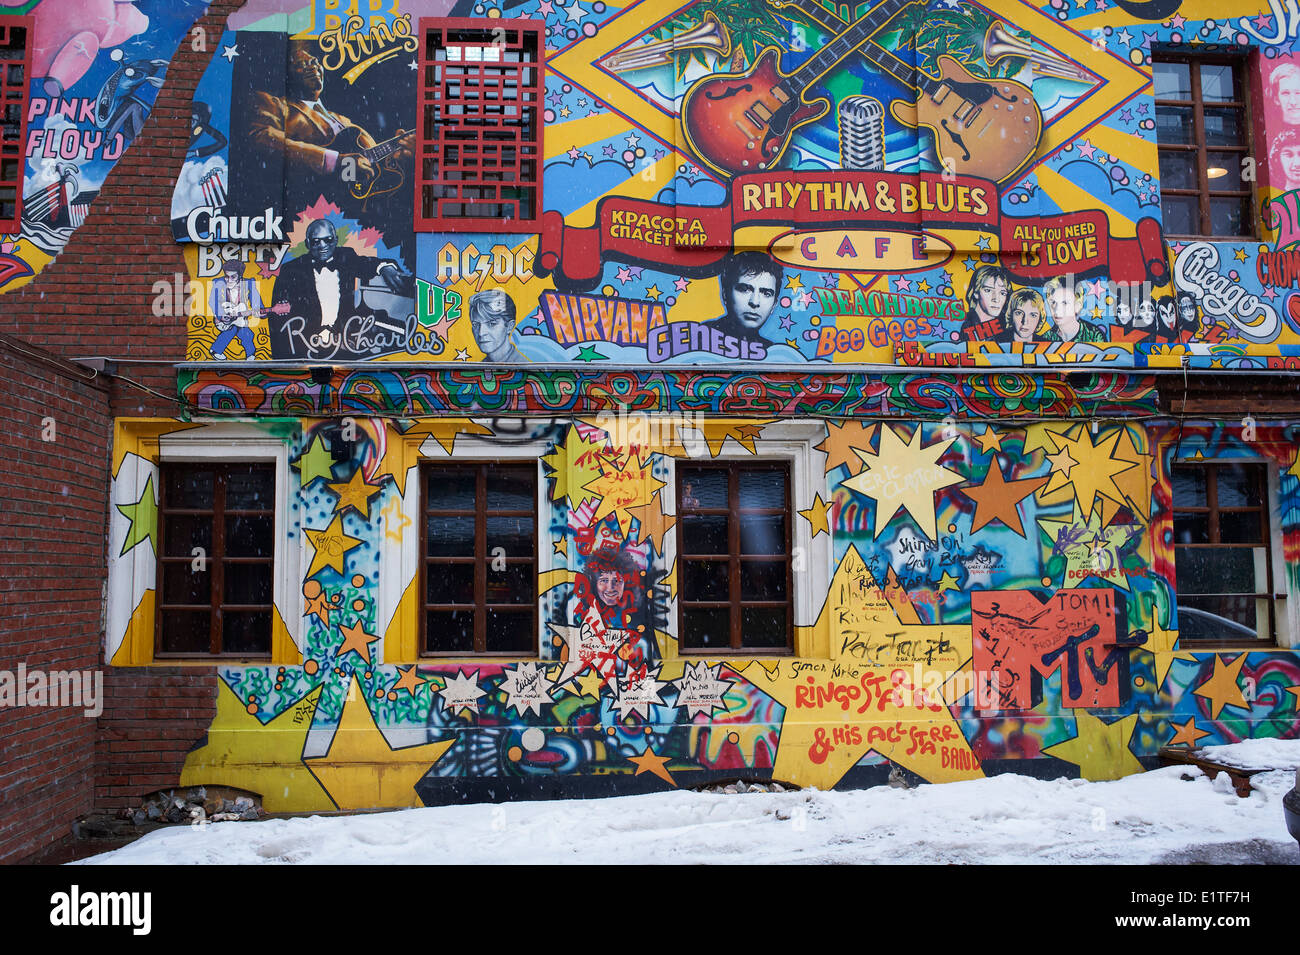 Russia, Moscow, Rhythm & Blues café with painting wall - Stock Image